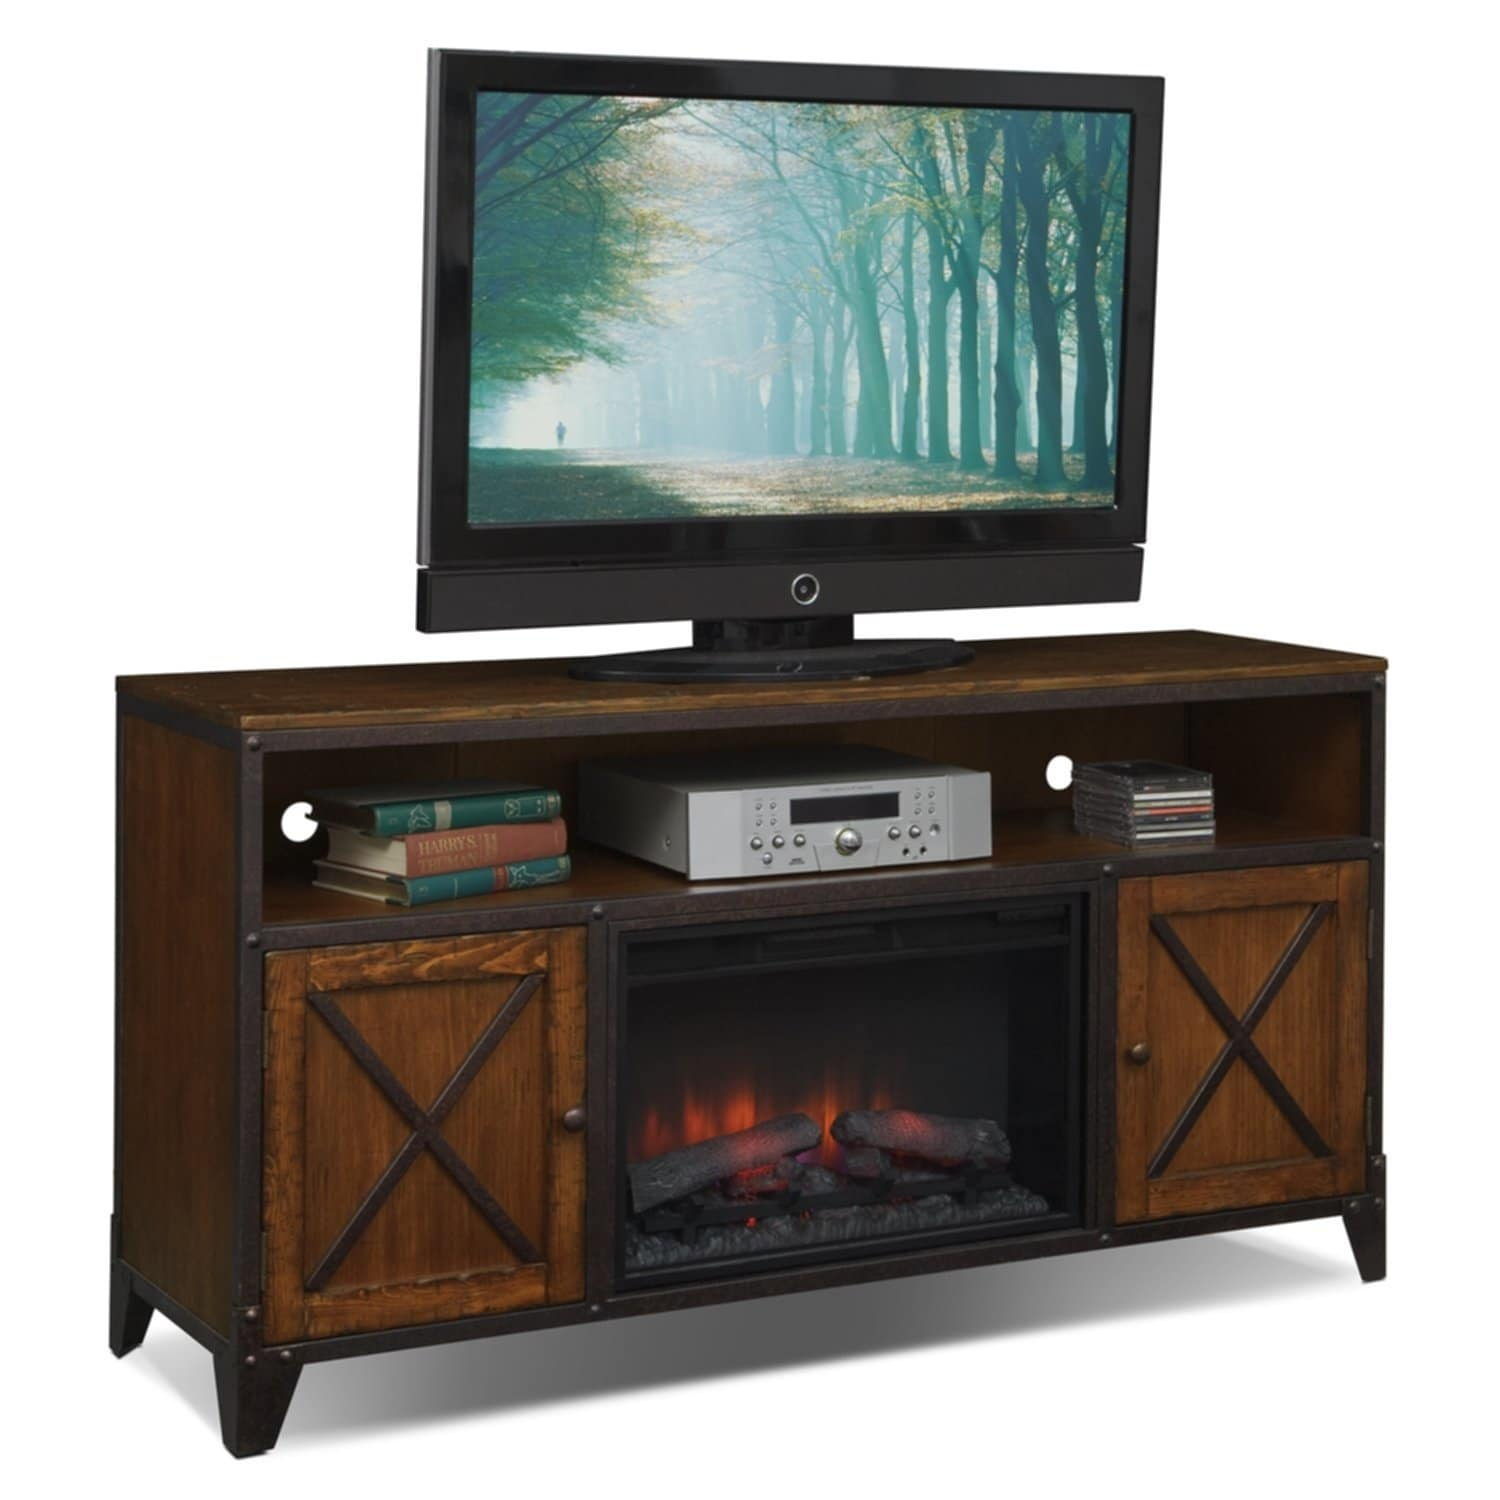 Fireplace Tv Stand For Sale Toronto